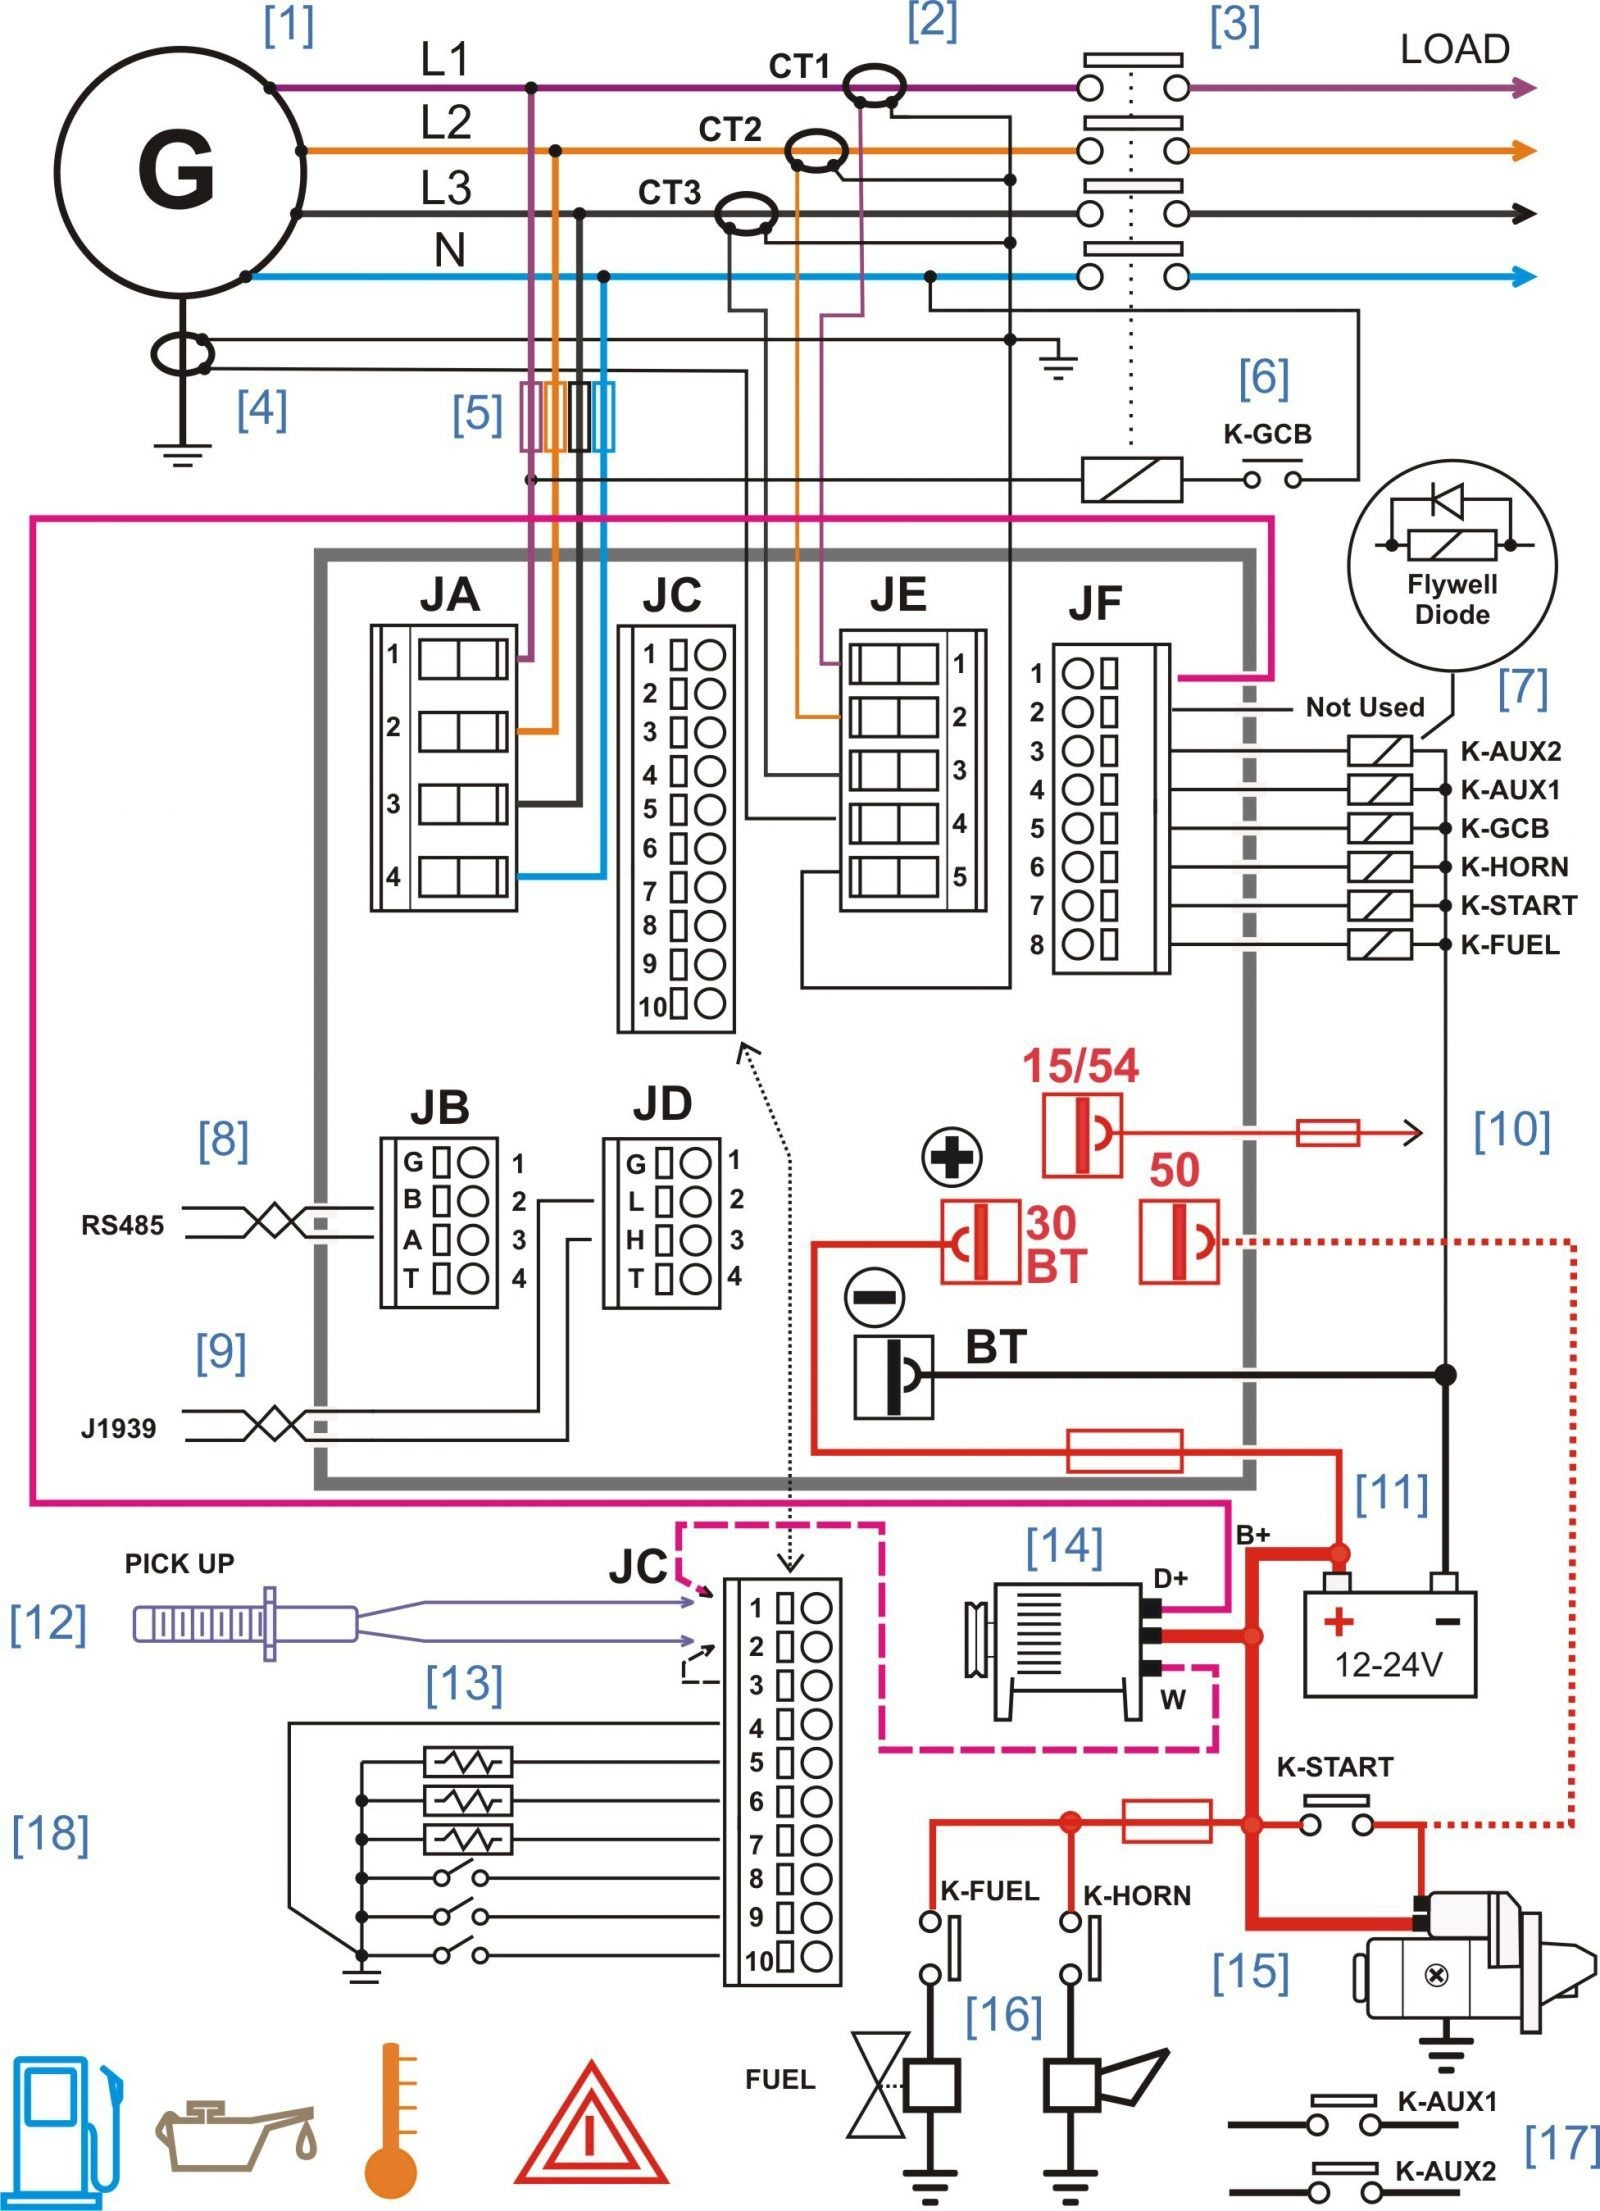 kenwood kdc-210u wiring diagram Download-Wiring Diagram for A Kenwood Kdc 210u Fresh Jvc Car Radio Wiring Gallery 16-l